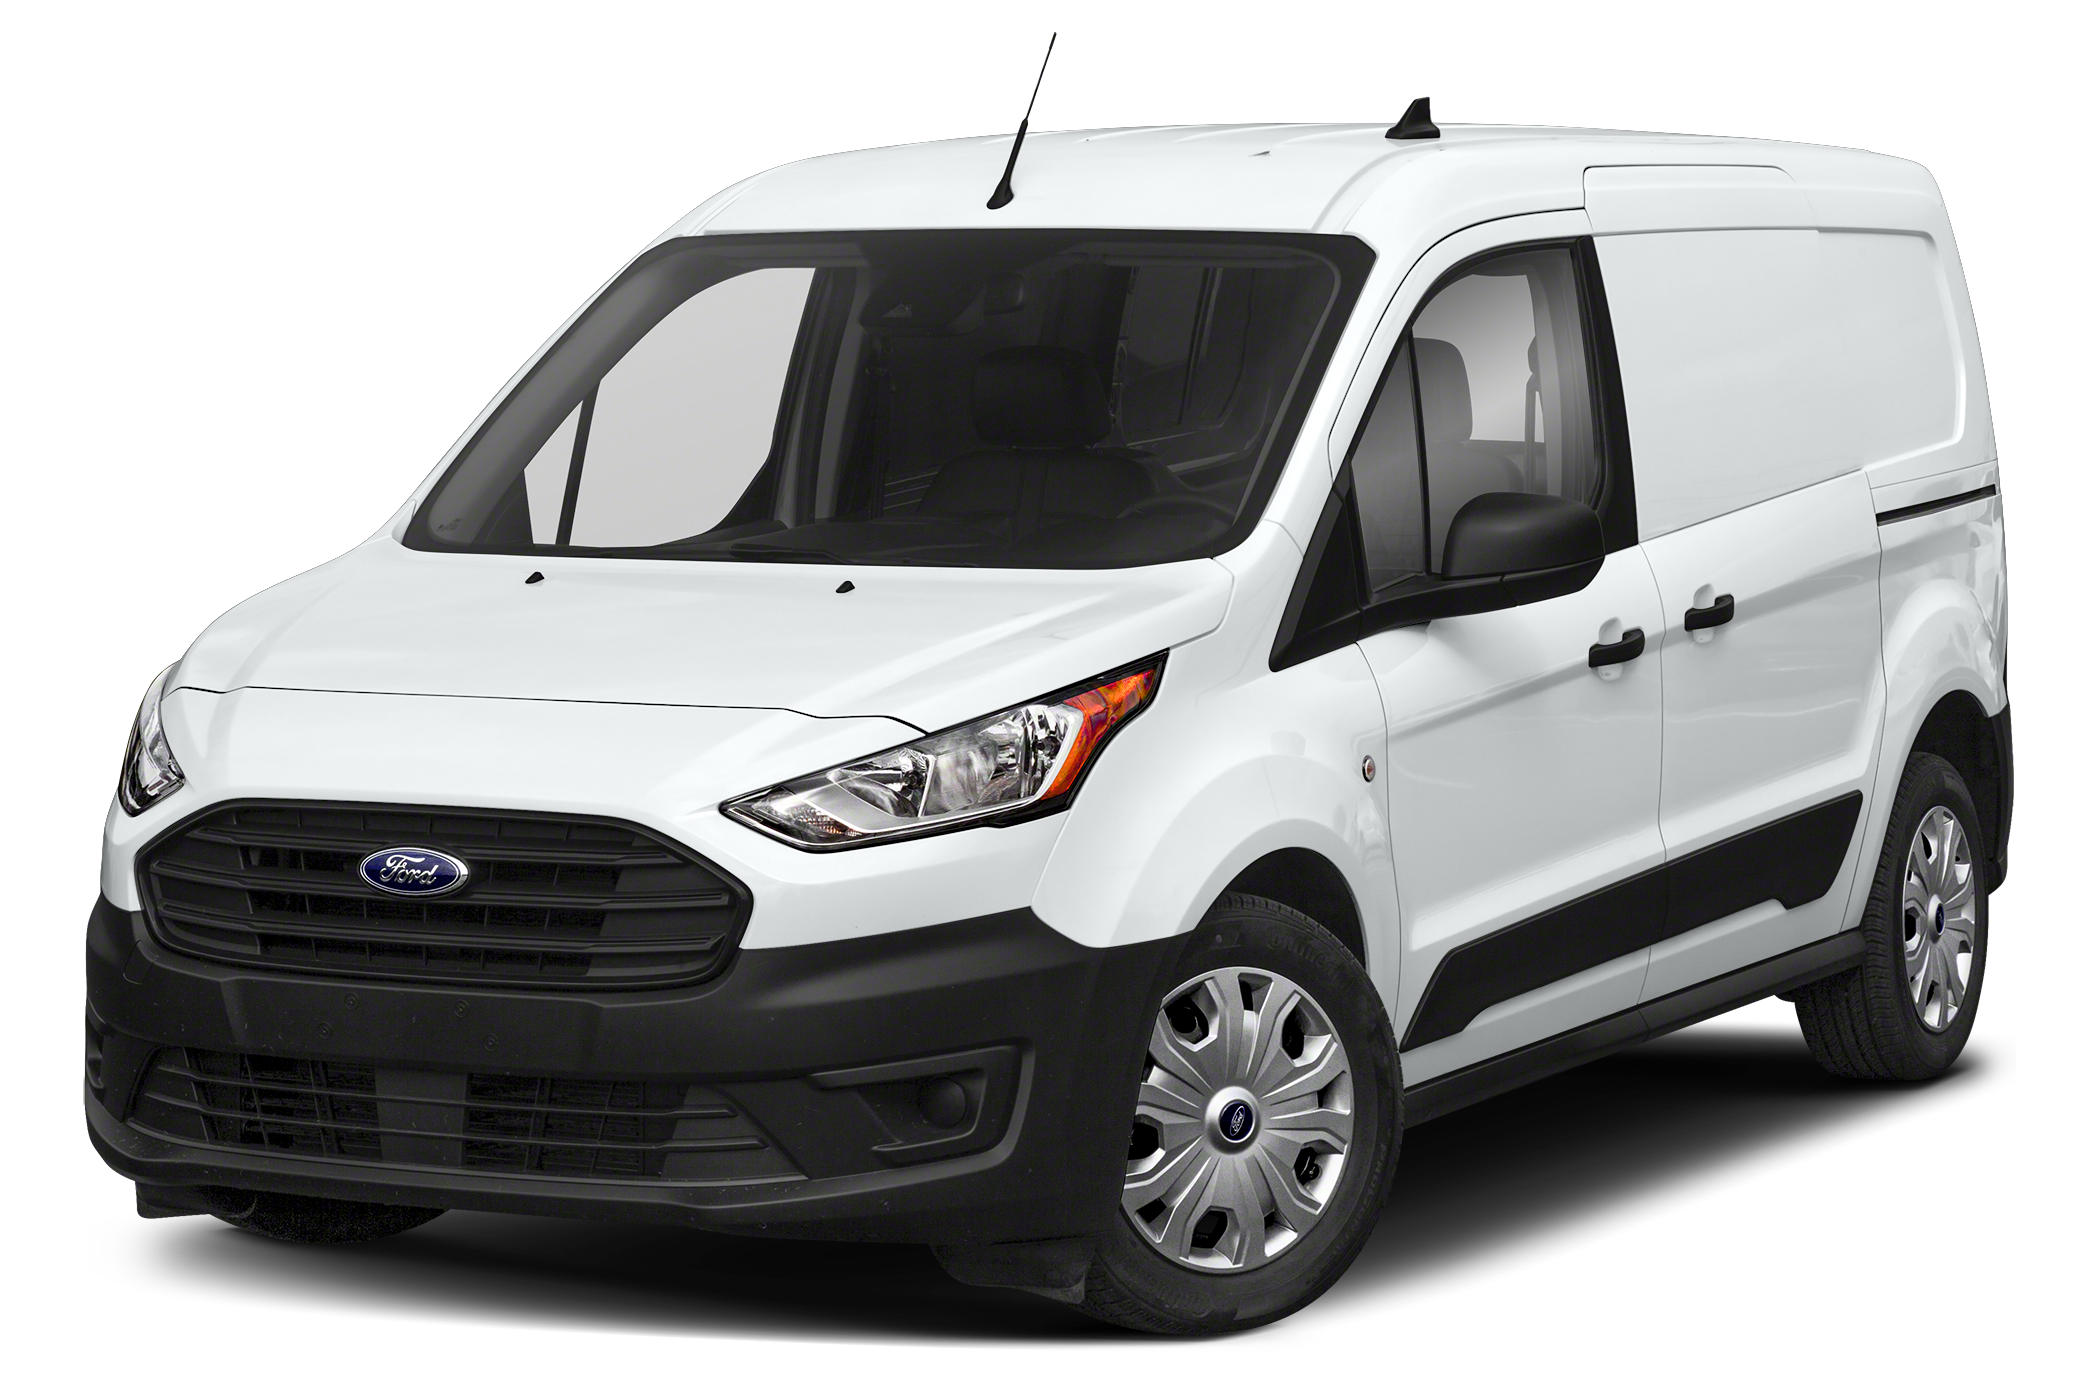 2021 ford transit connect - view specs, prices & photos